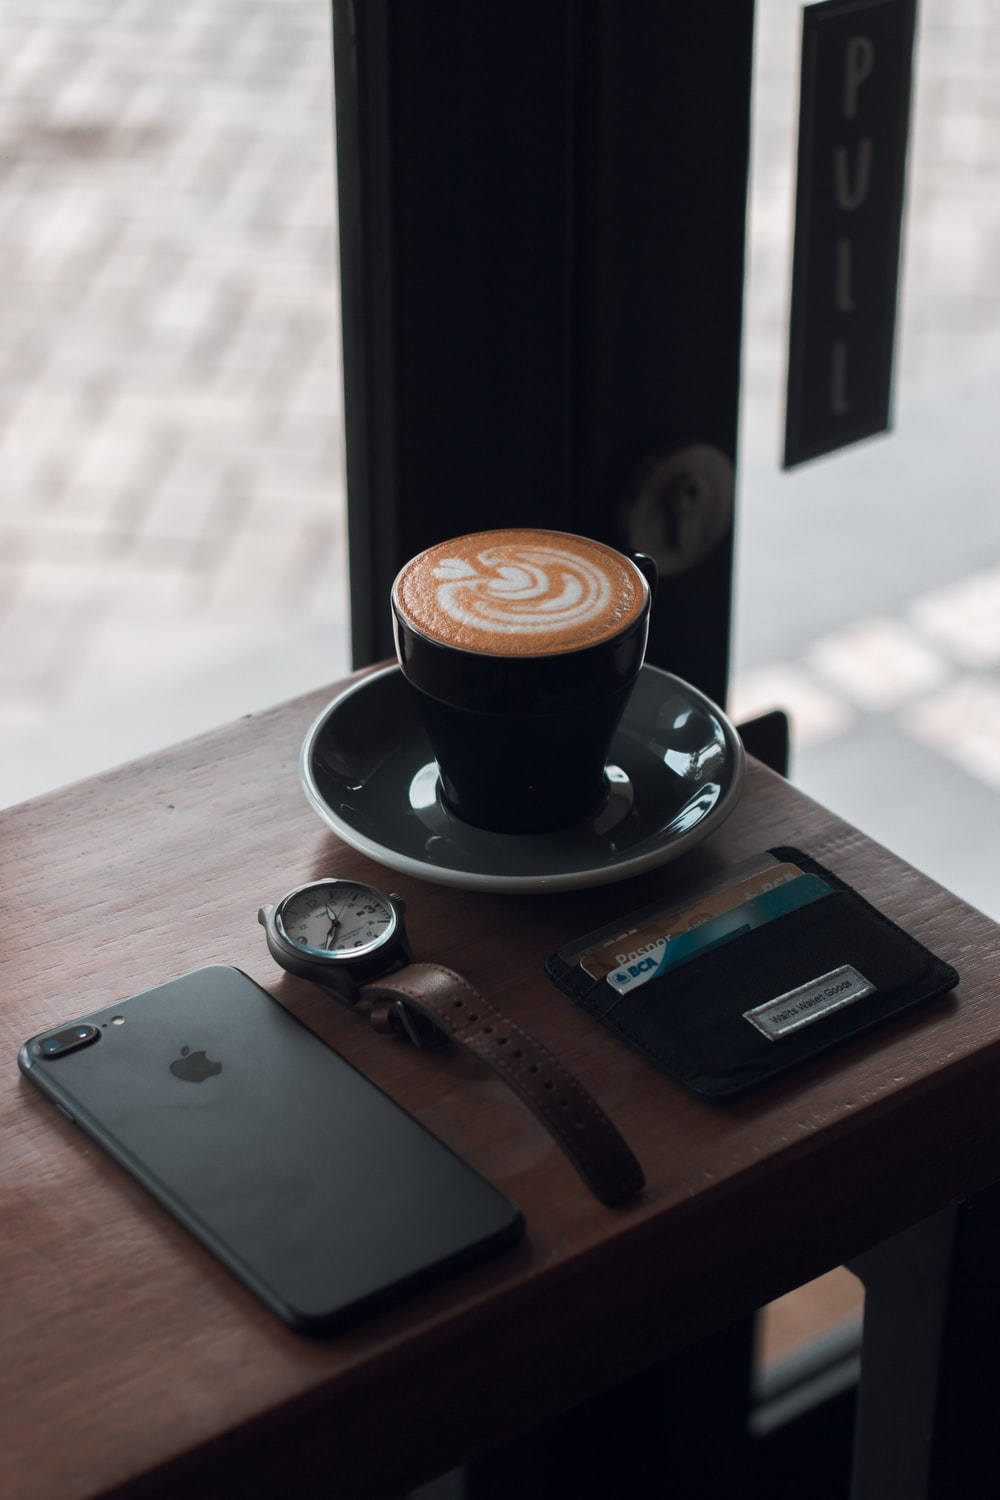 black ceramic teacup with coffee latte on saucer beside black iPhone 7 Plus on brown wooden table